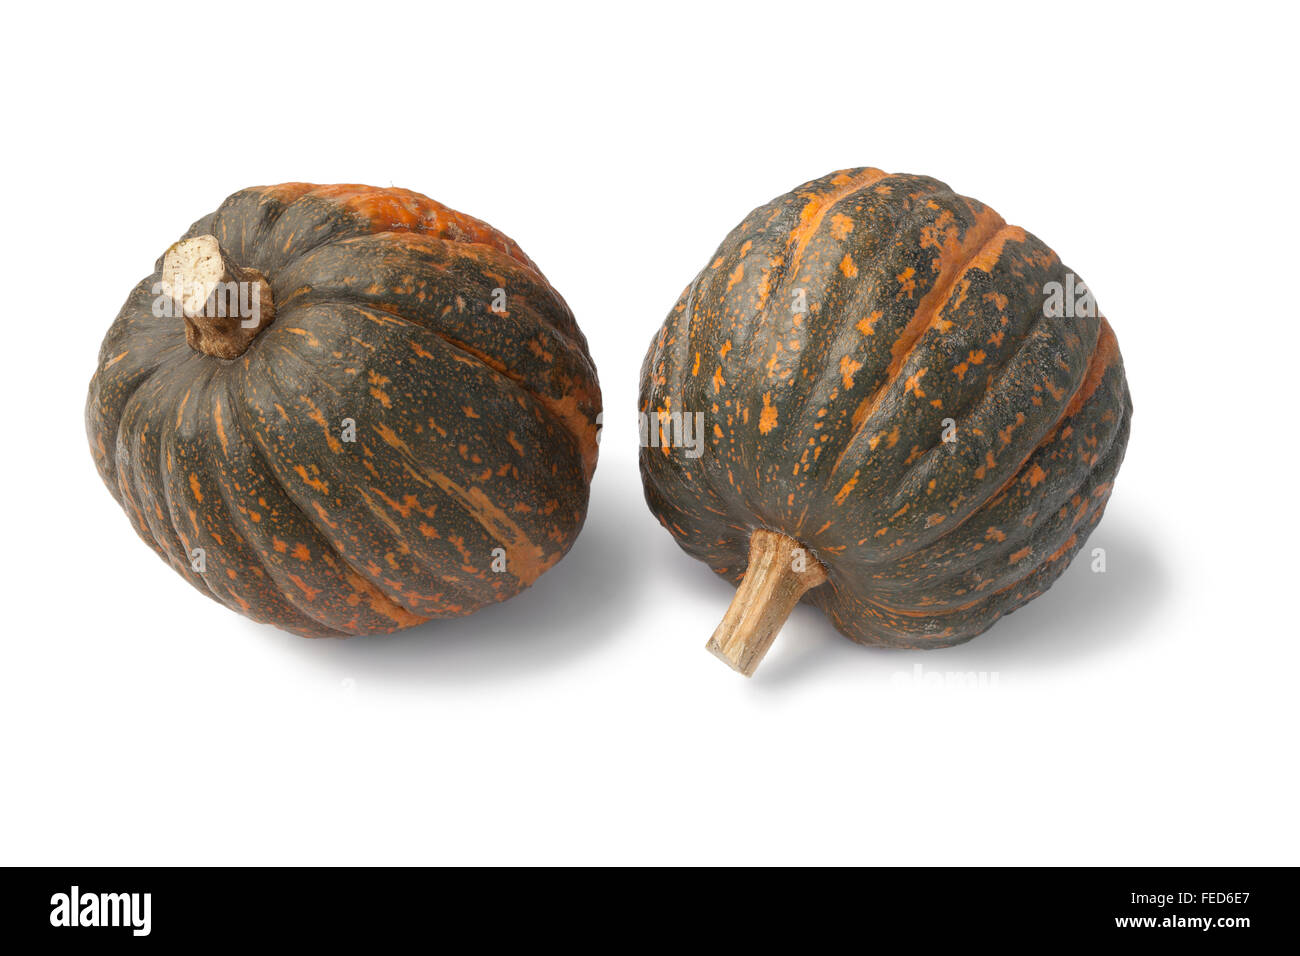 Two fresh butter pumpkins on white background - Stock Image